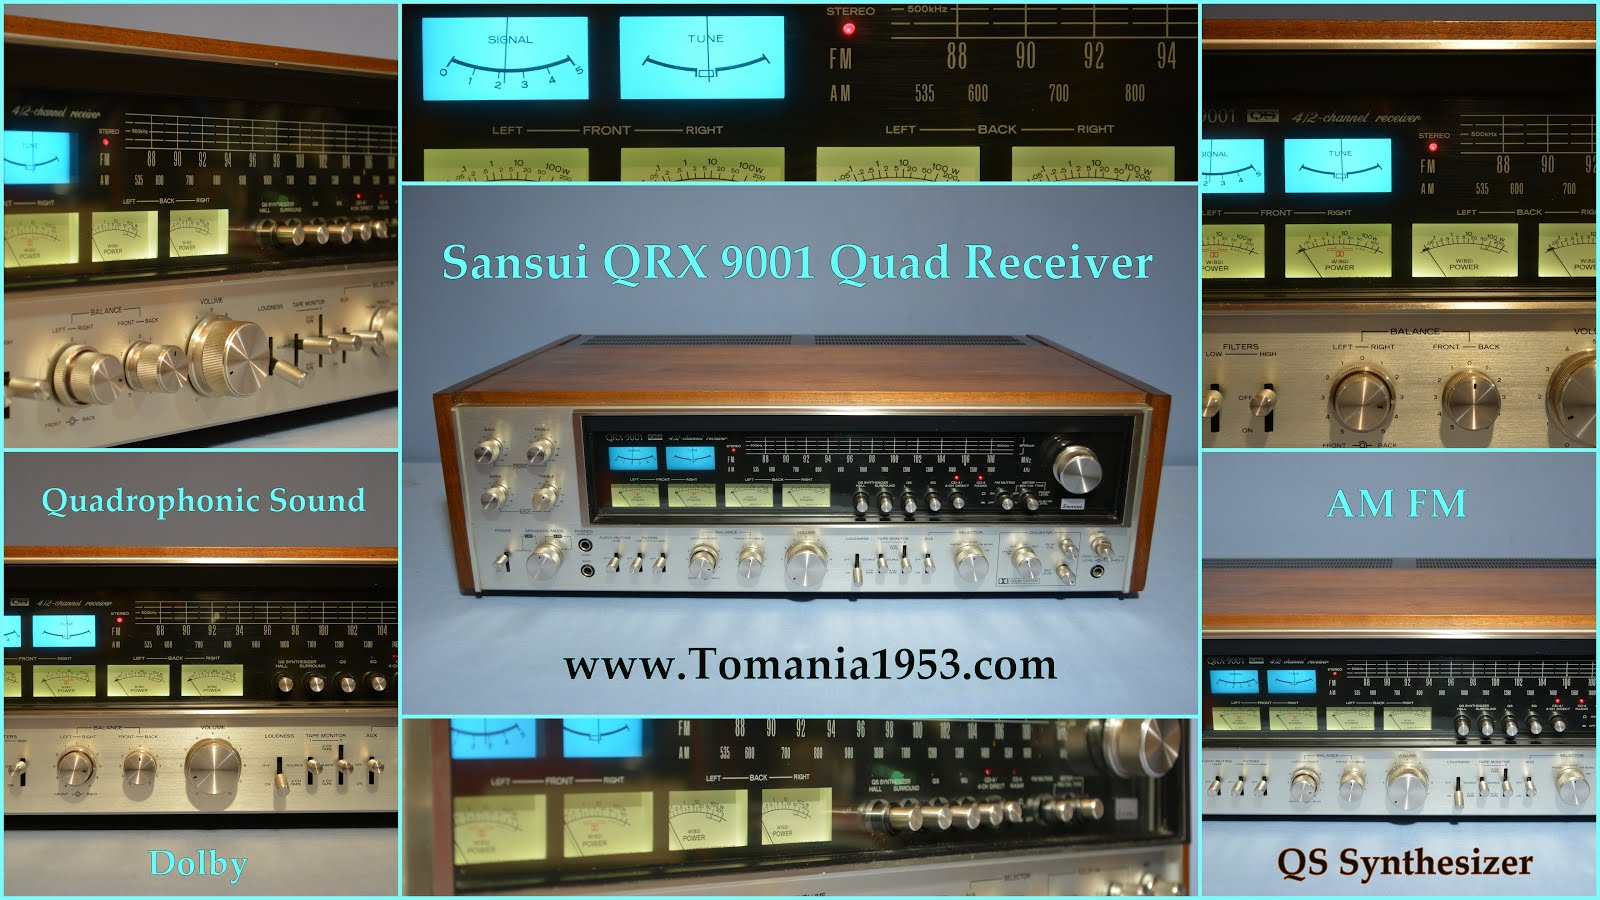 Sansui QRX 9001 Quad FM AM Receiver